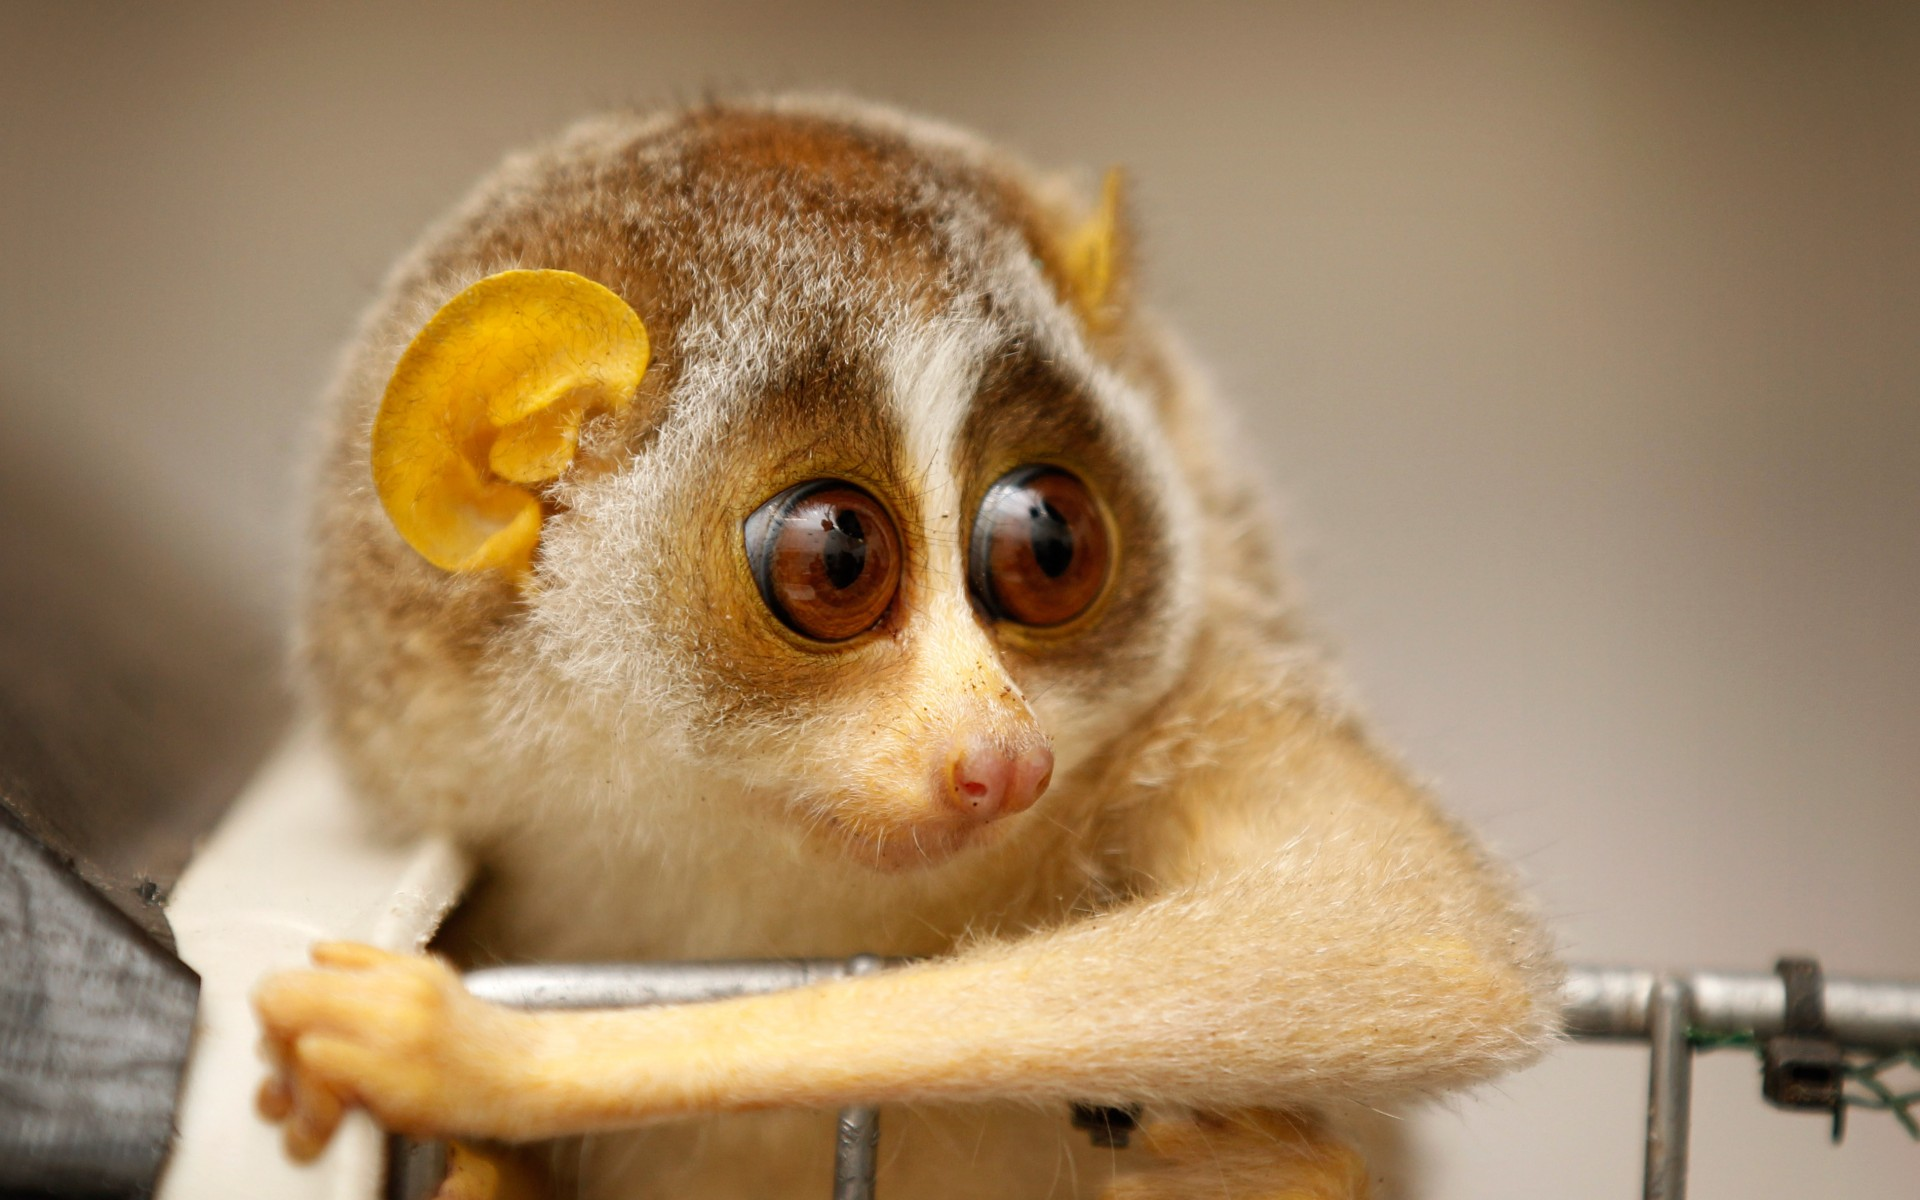 The fearsome Slow loris